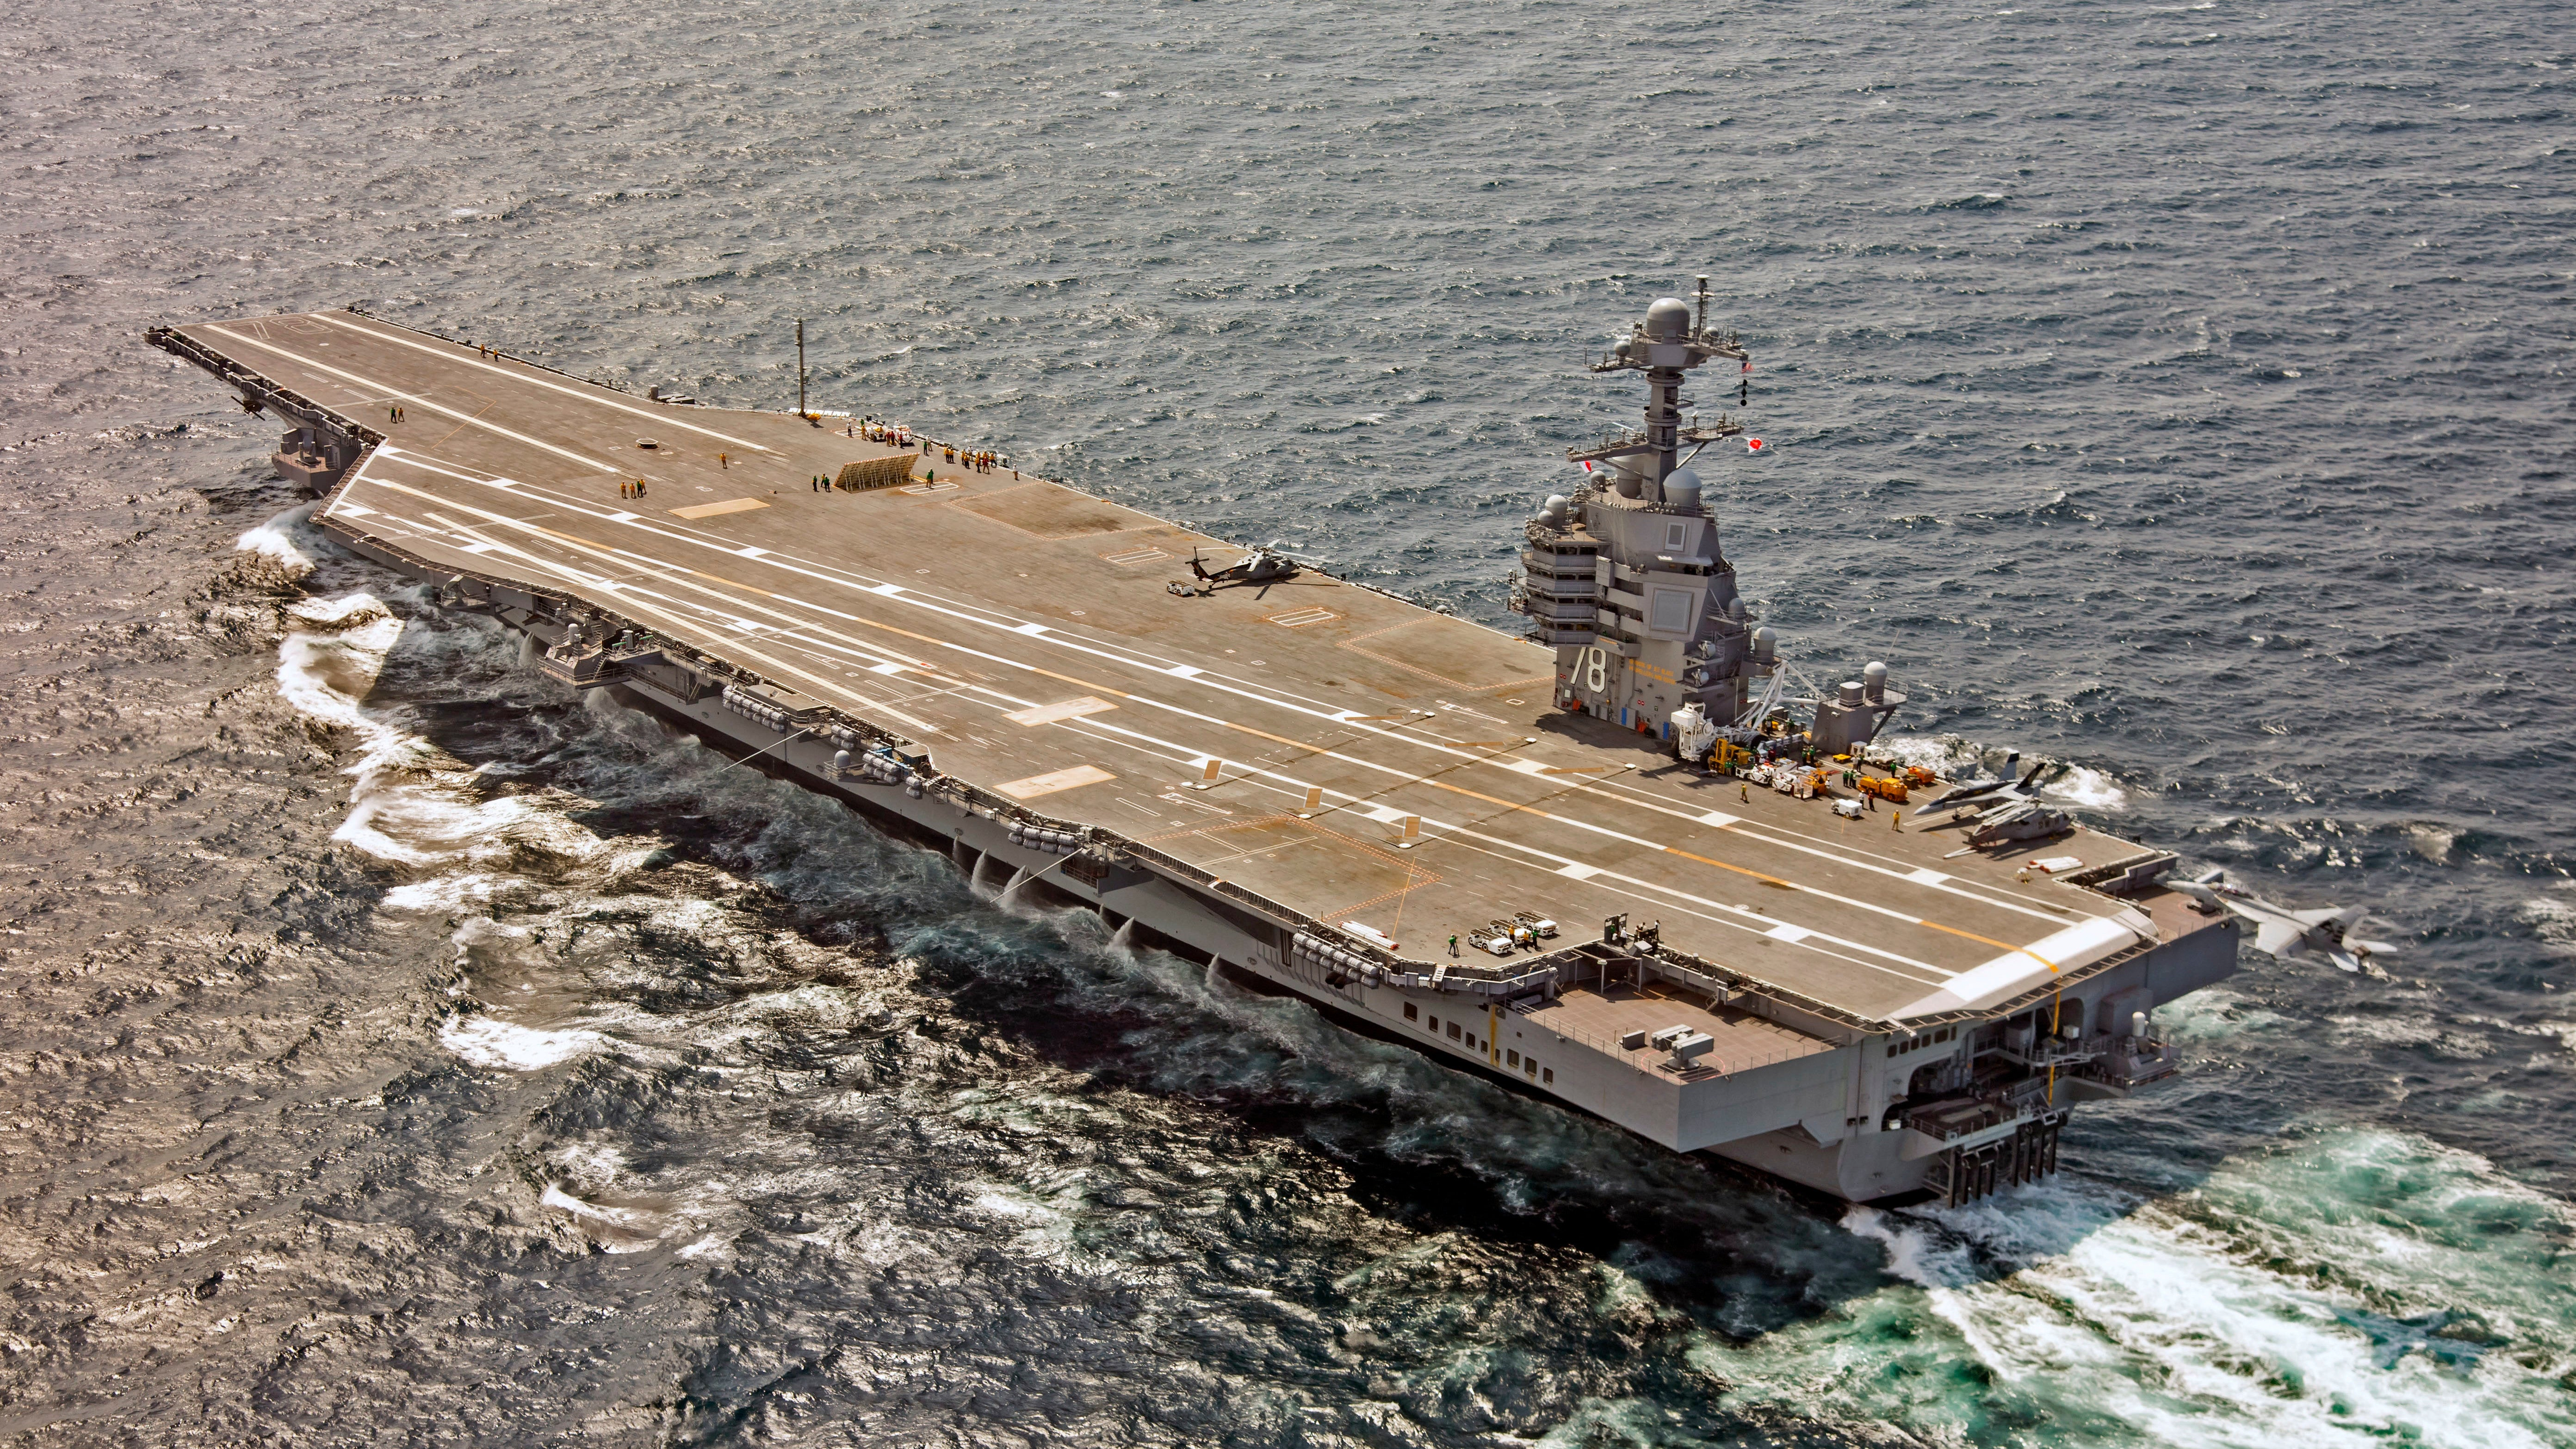 The U.S. Navy's Big Beautiful New Carrier Has Hilariously Messed Up Toilets